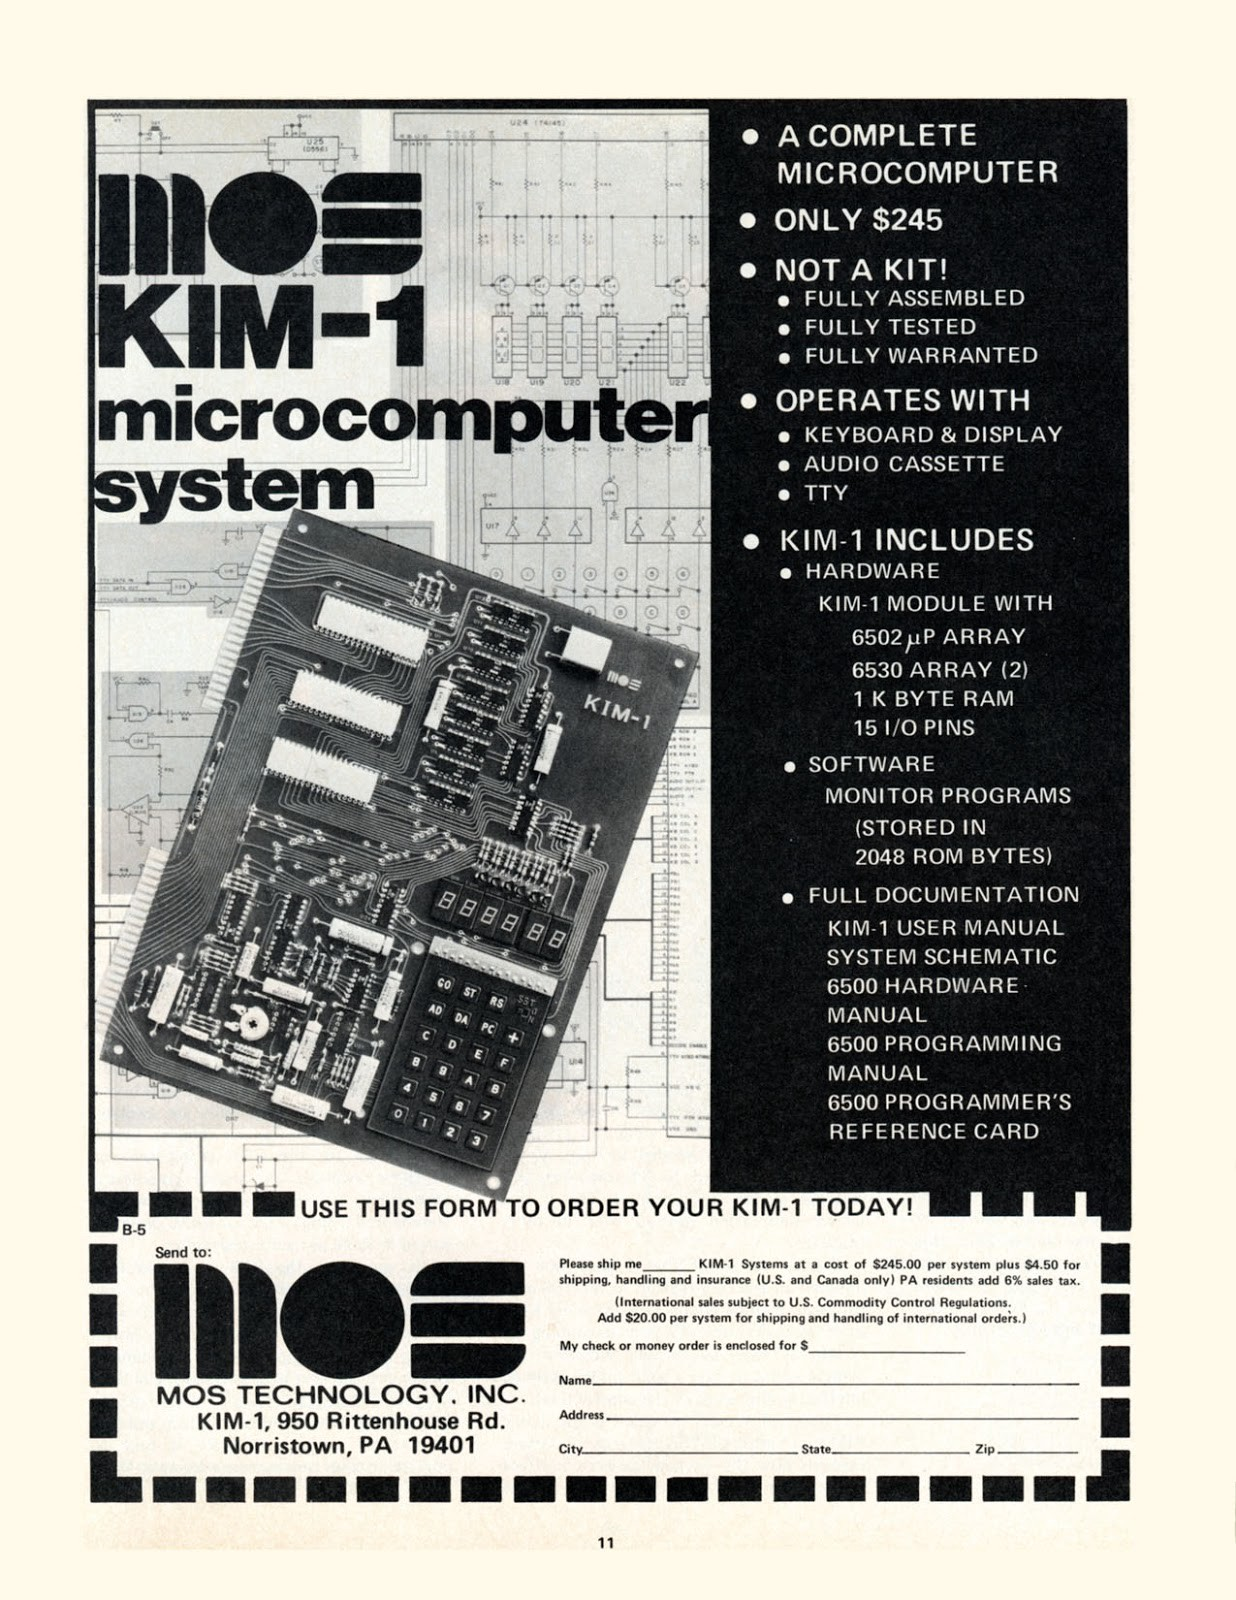 Did Commodore, more than Apple, contribute to the birth of the